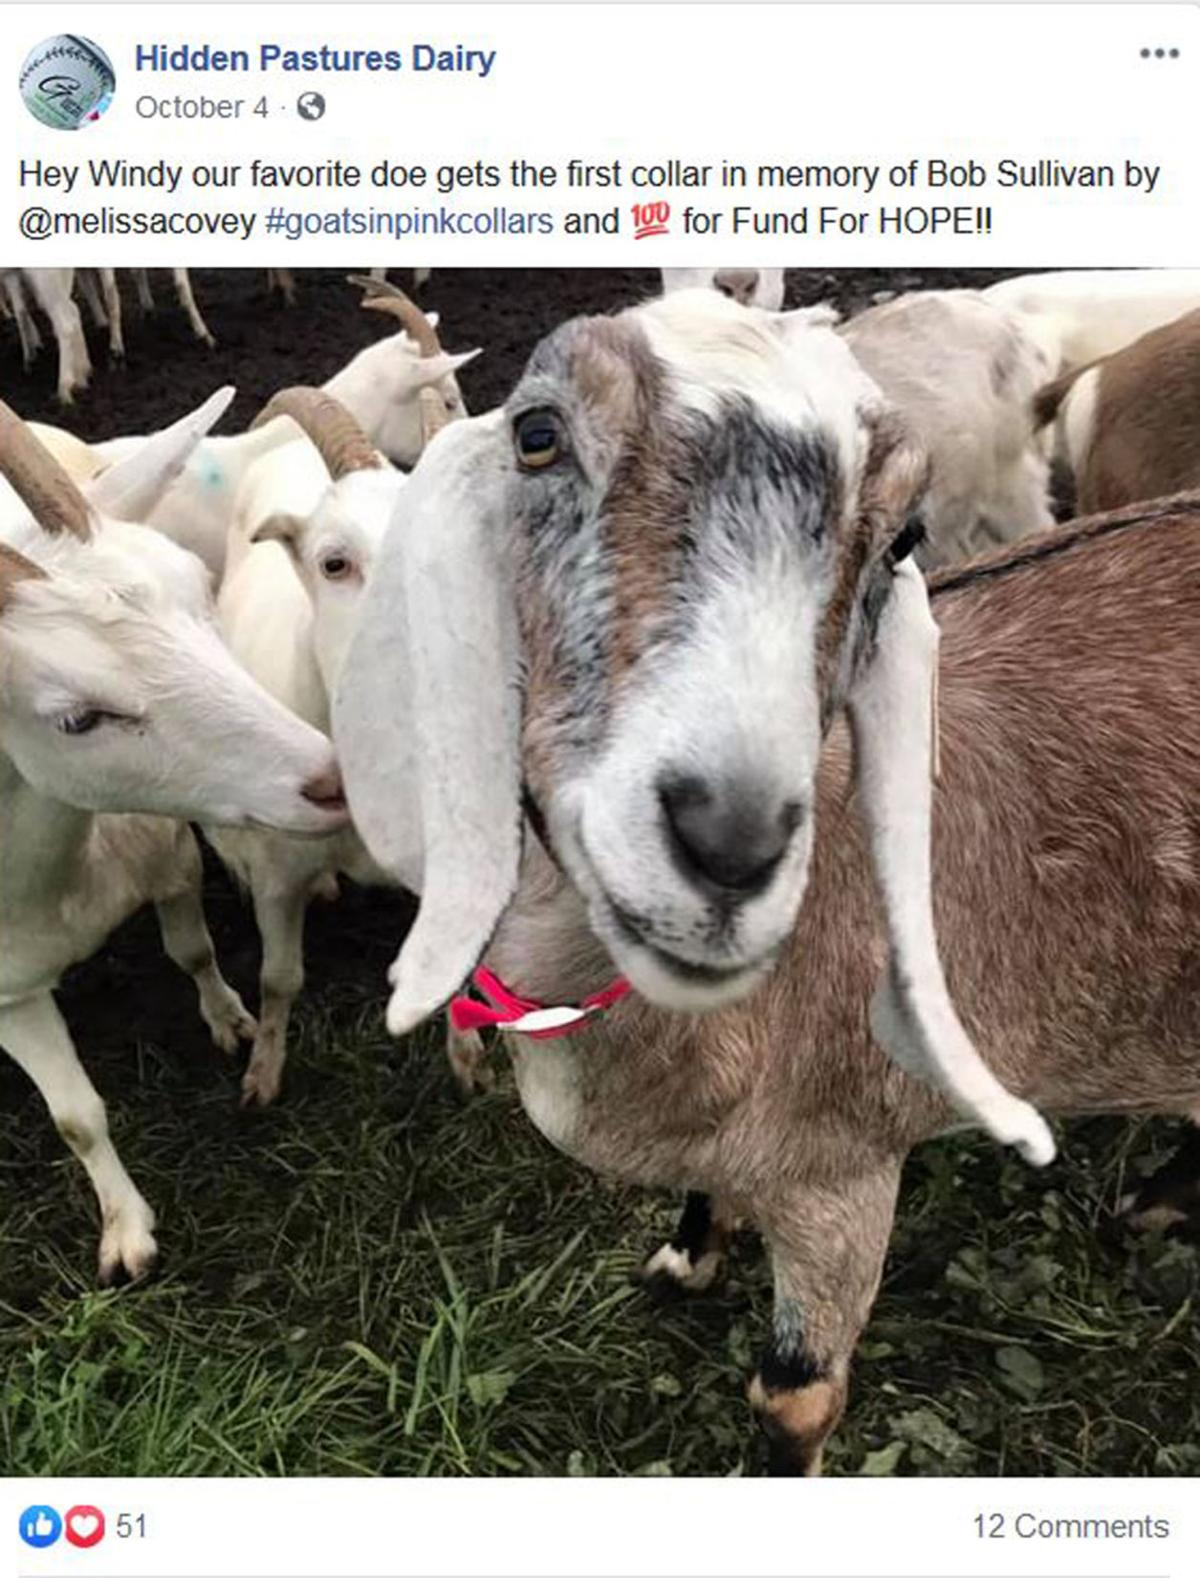 Glenfield goats help collar donations for cancer fund